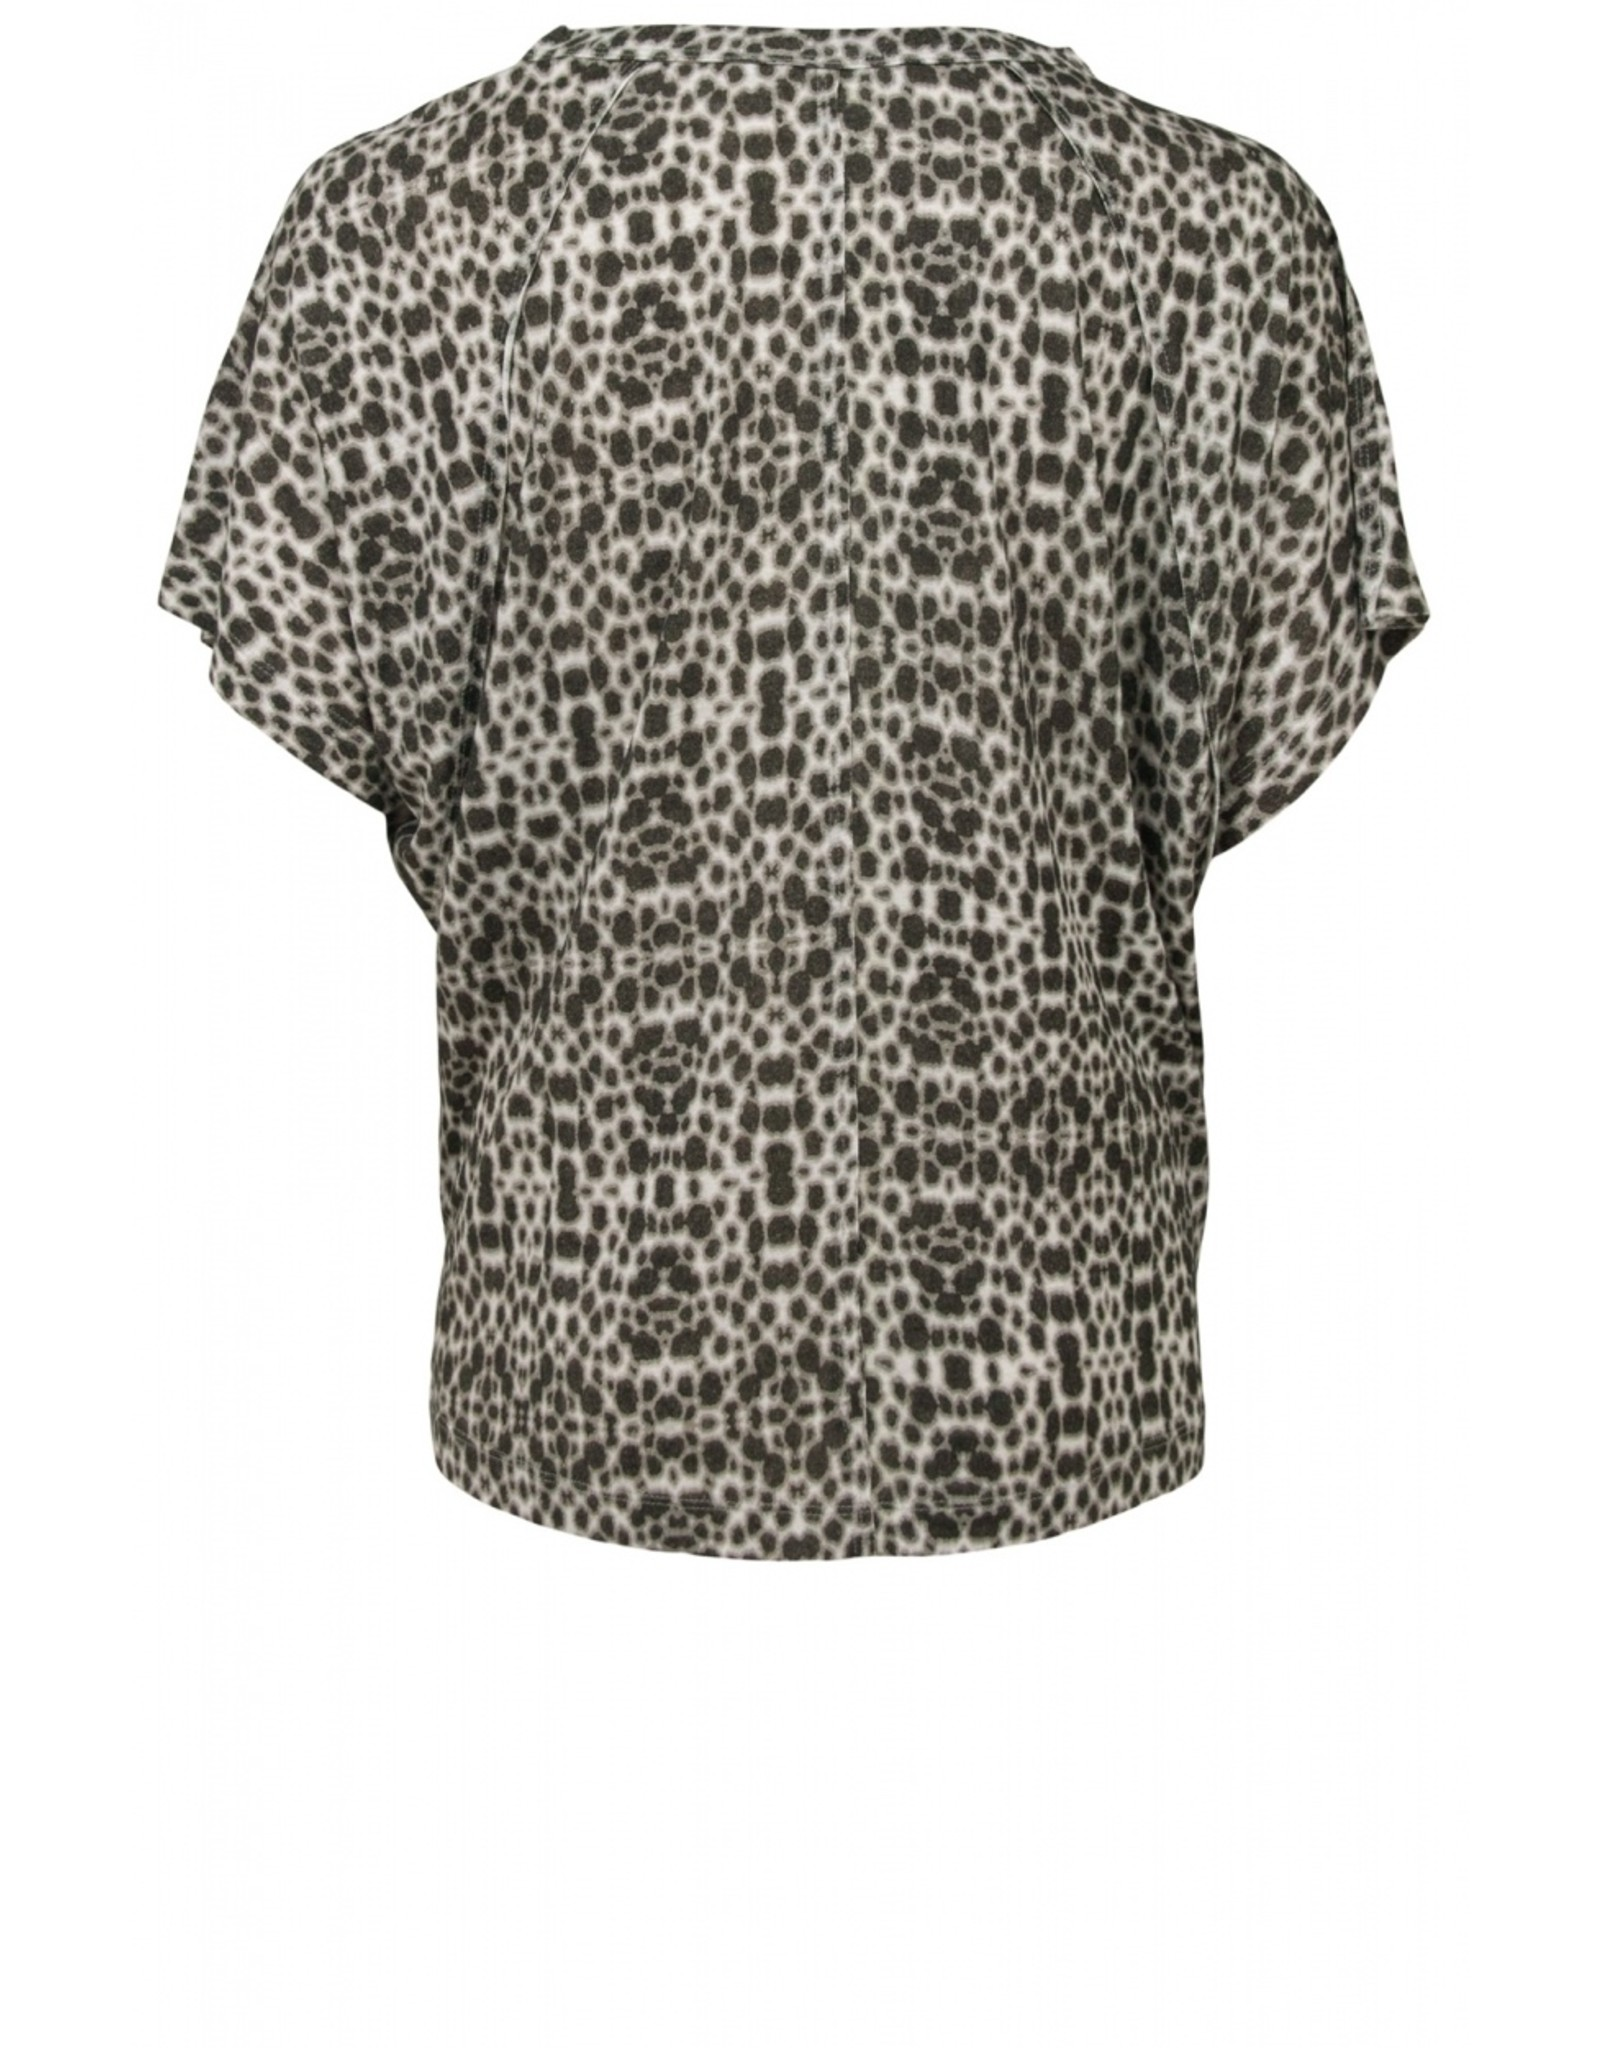 Moscow T-shirt Tee antra